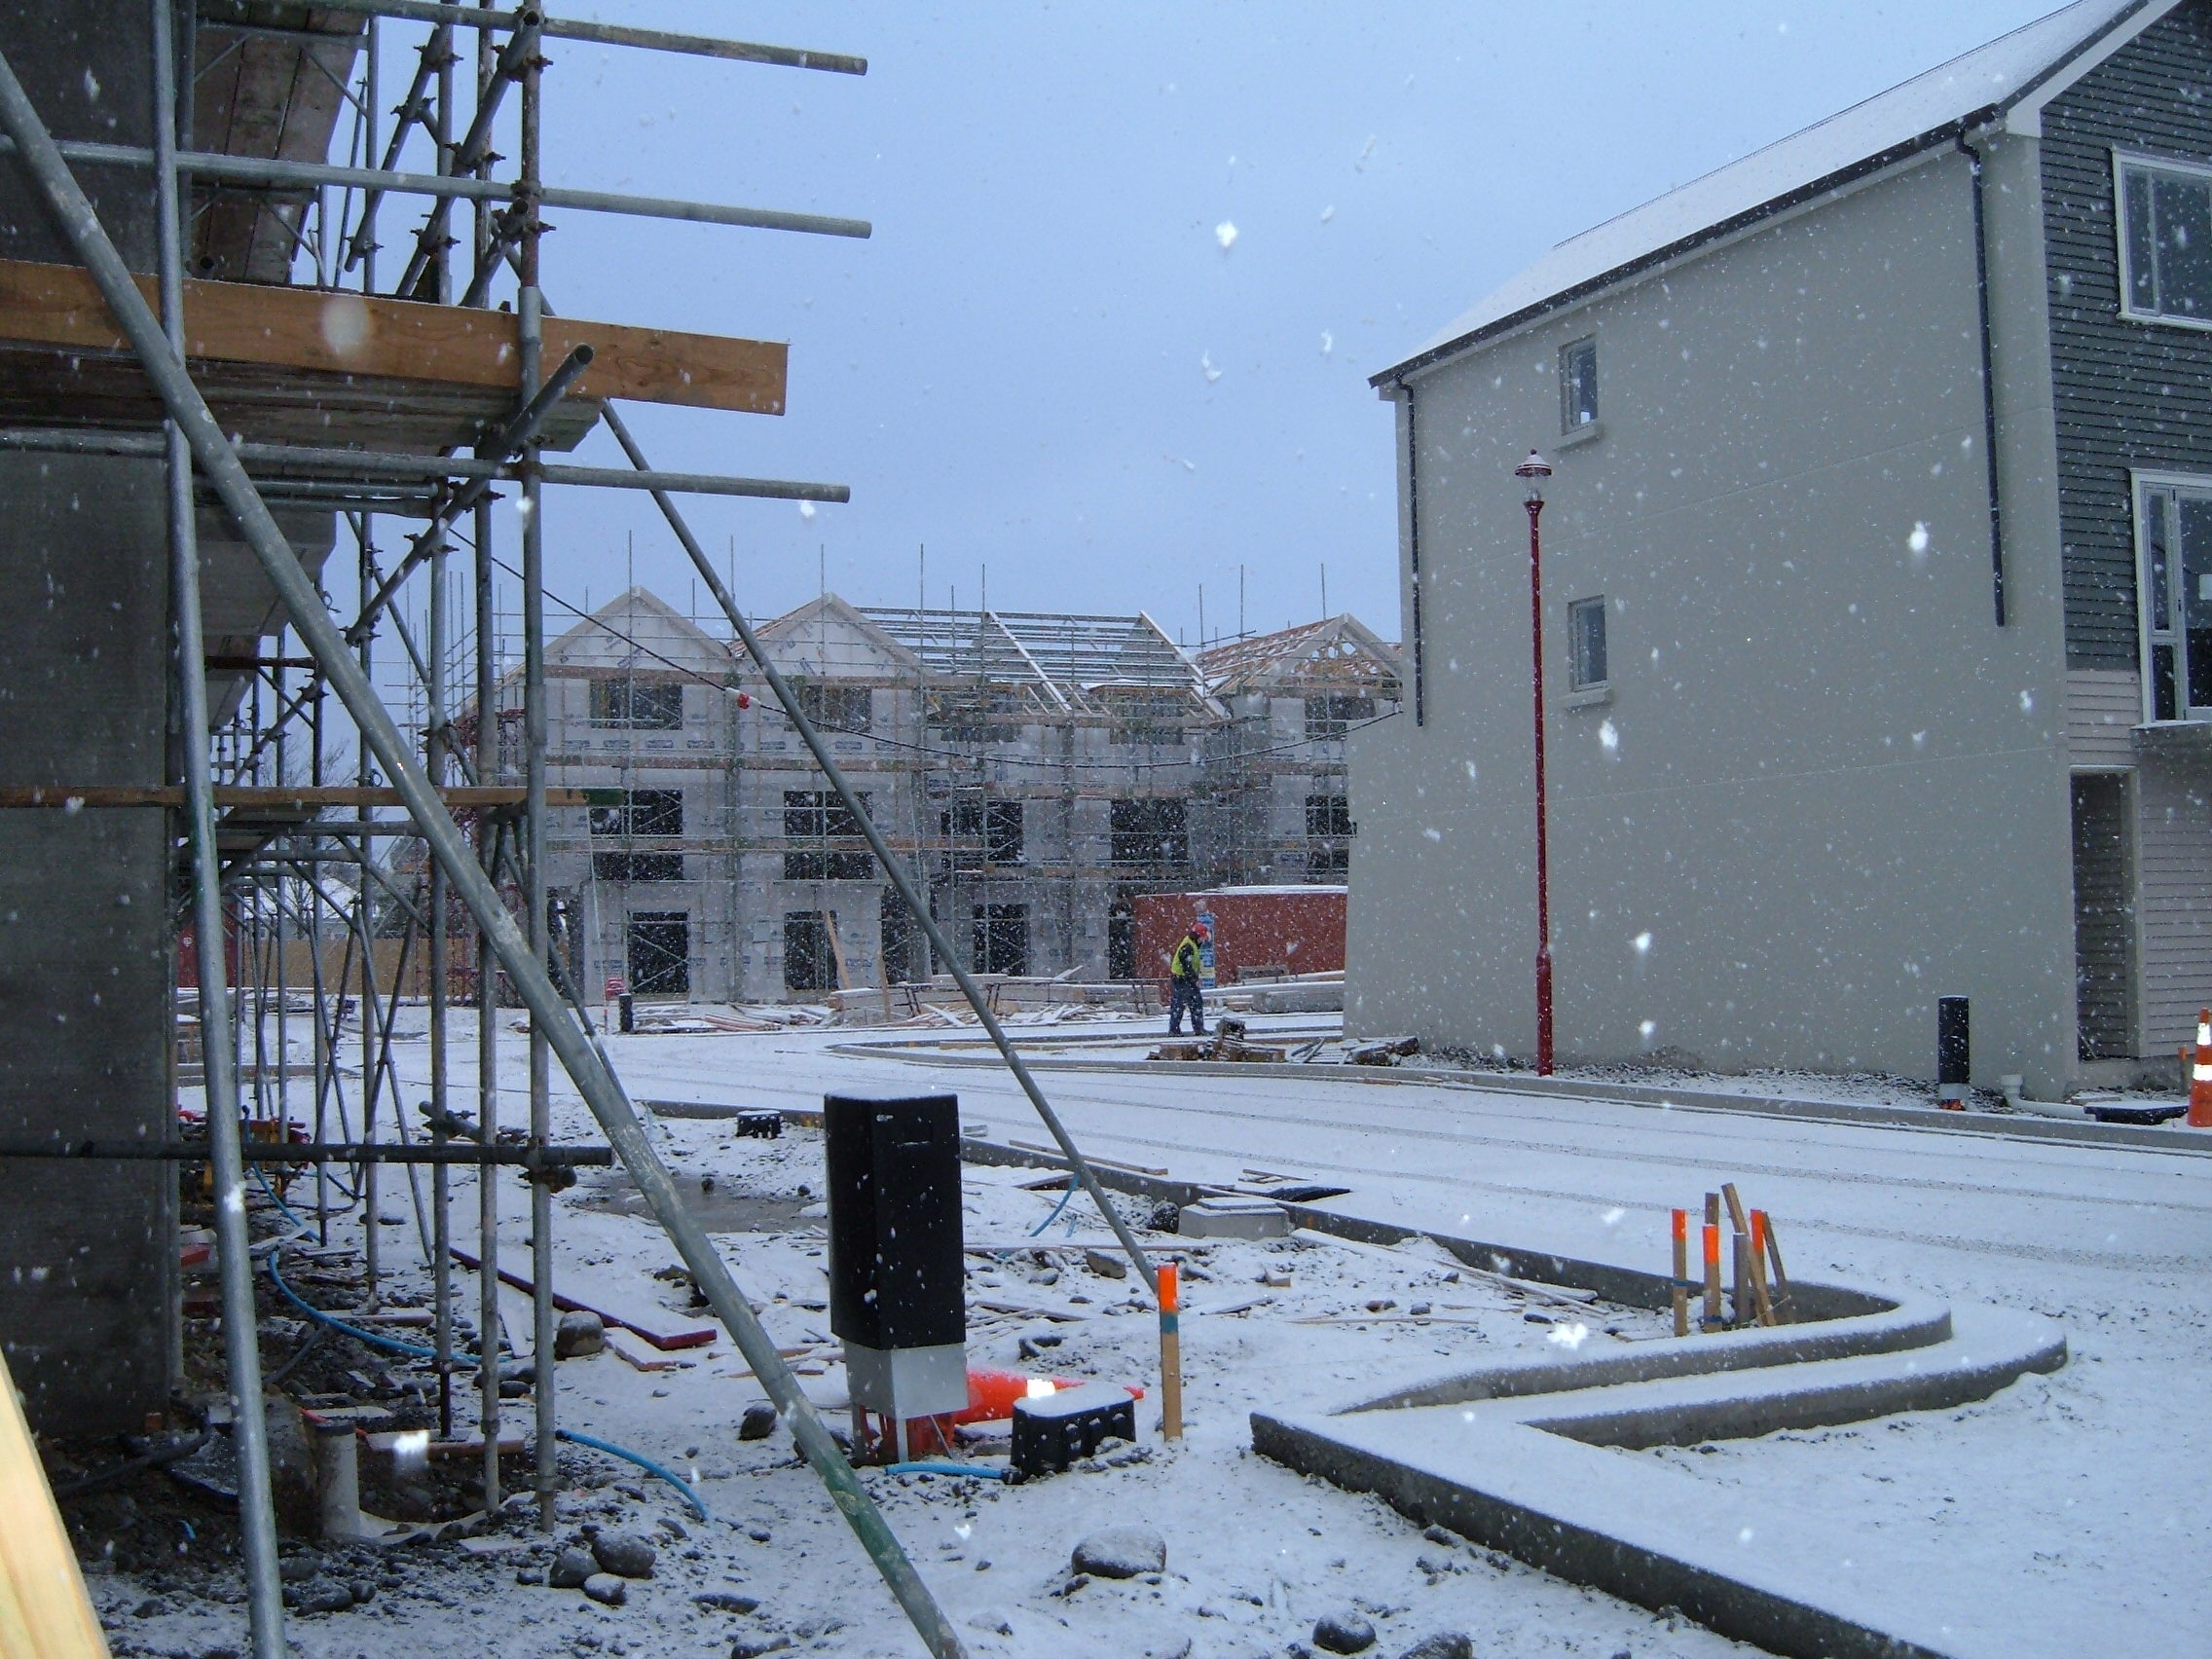 Our team working on the Poulson St 3 Story Units, a commercial construction project in Christchurch